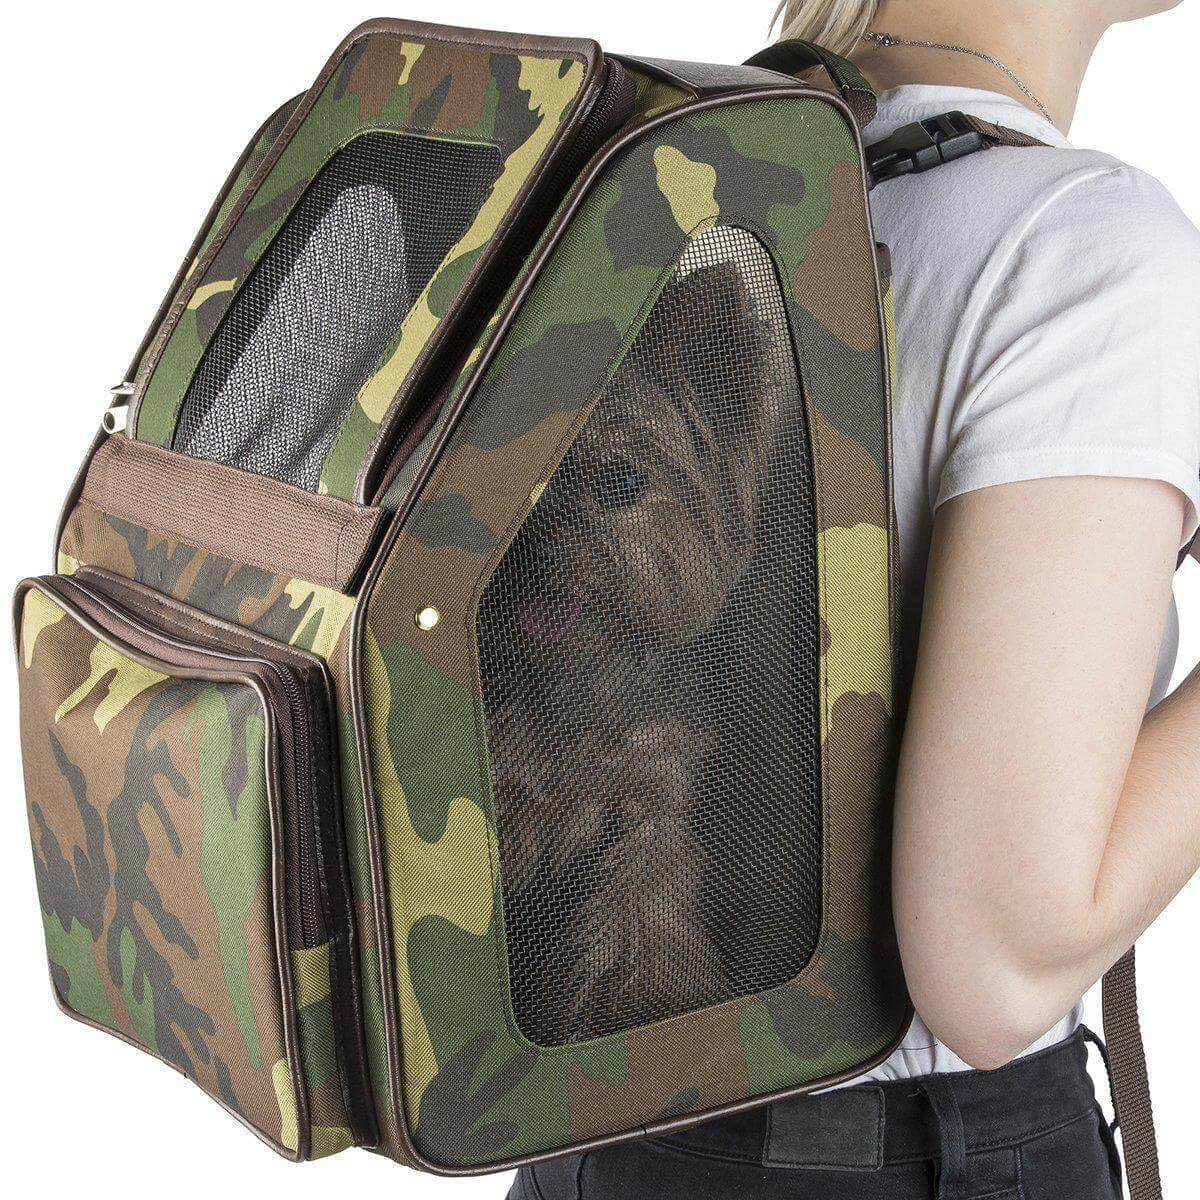 Petote Rio Camo Dog Carrier with Wheels - Backpack